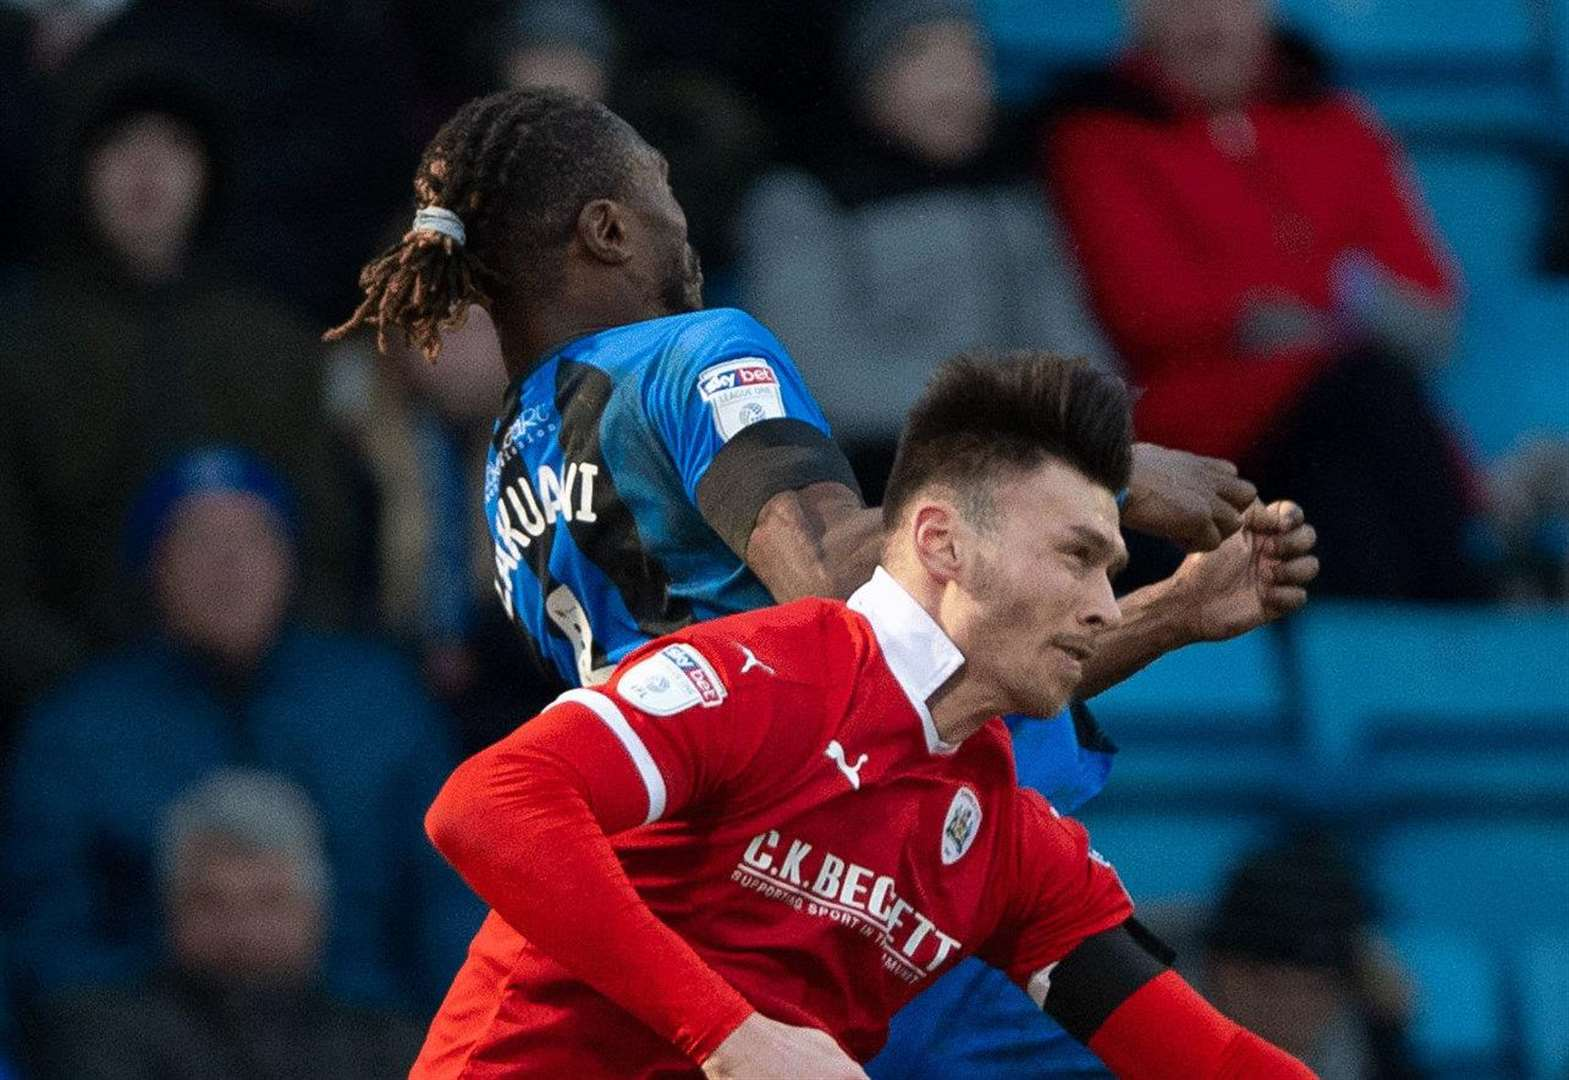 Report: Gills slip into drop zone